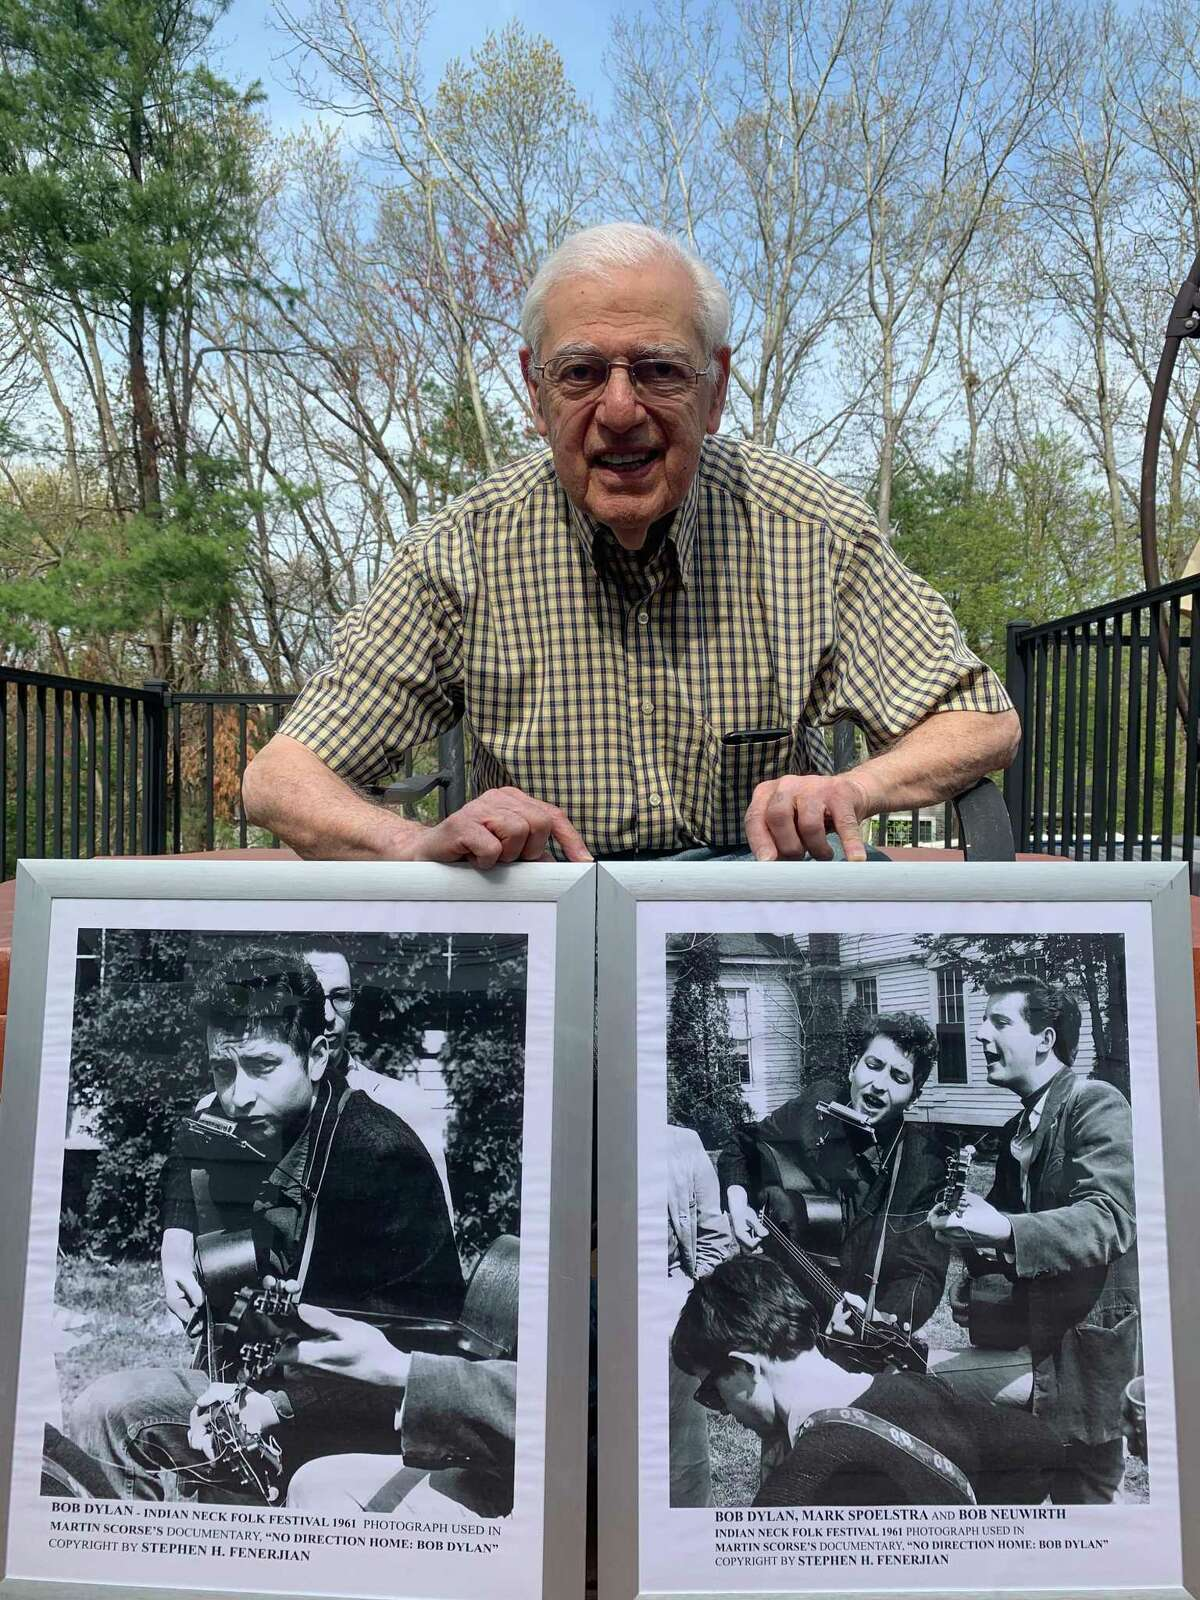 Stephen H. Fenerjian, 87, shows off two of the photographs he took of Bob Dylan at the 1961 Indian Neck Folk Festival in Branford when Fenerjian was 27. The photo of Fenerjian was taken by his son, Stephen M. Fenerjian, also known as Stephen Fenerjian Jr.